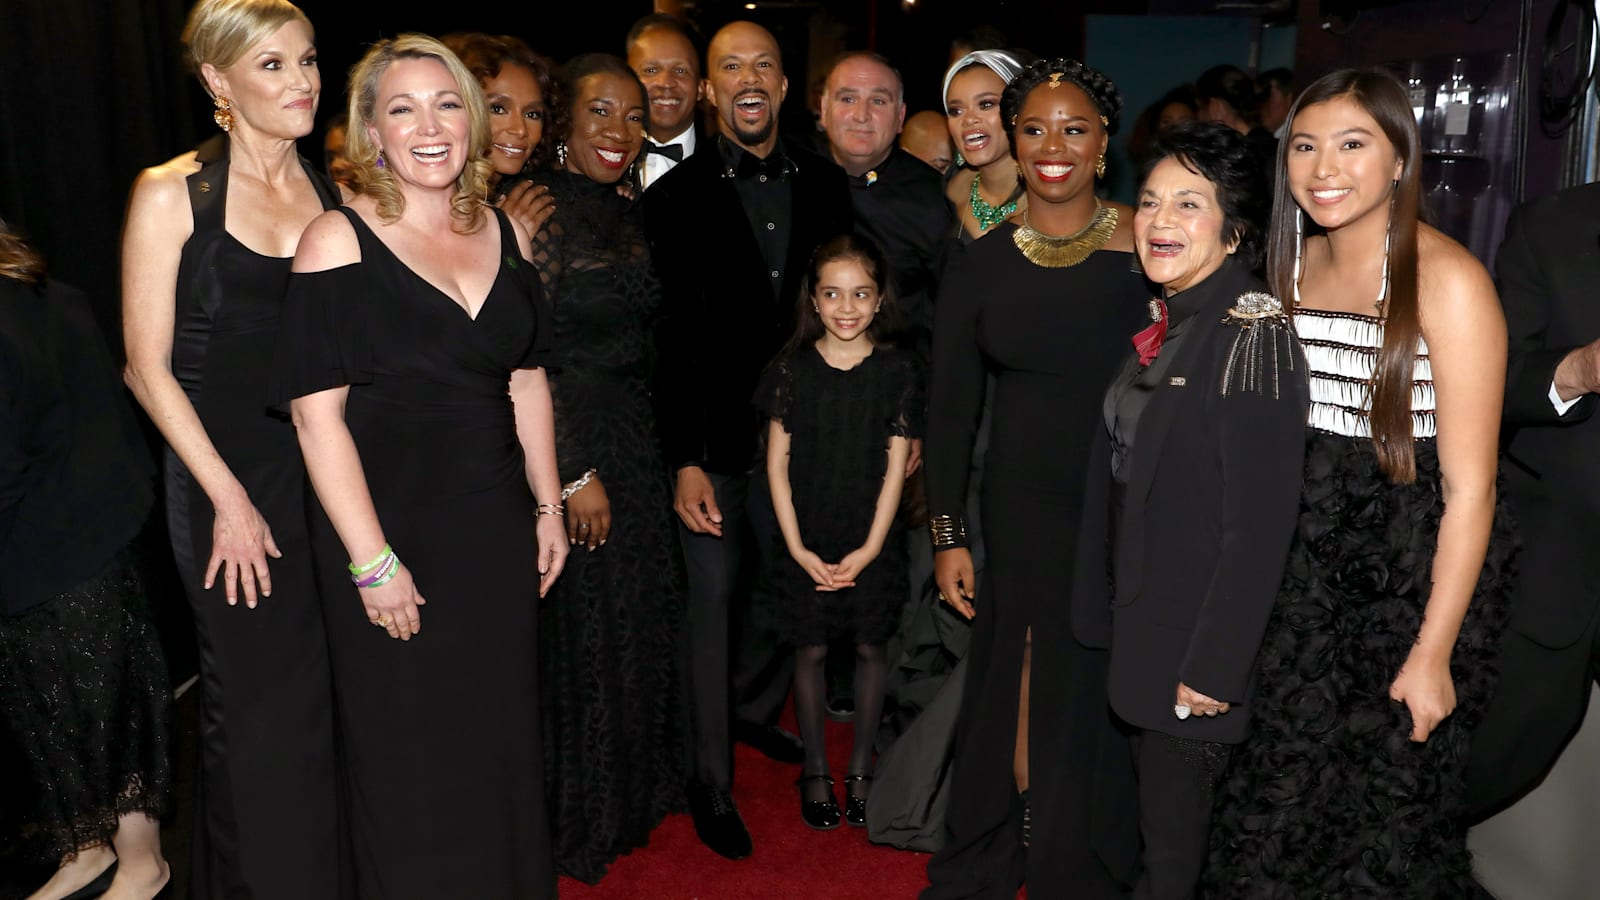 Meet the Activists Who Took Center Stage at the Oscars